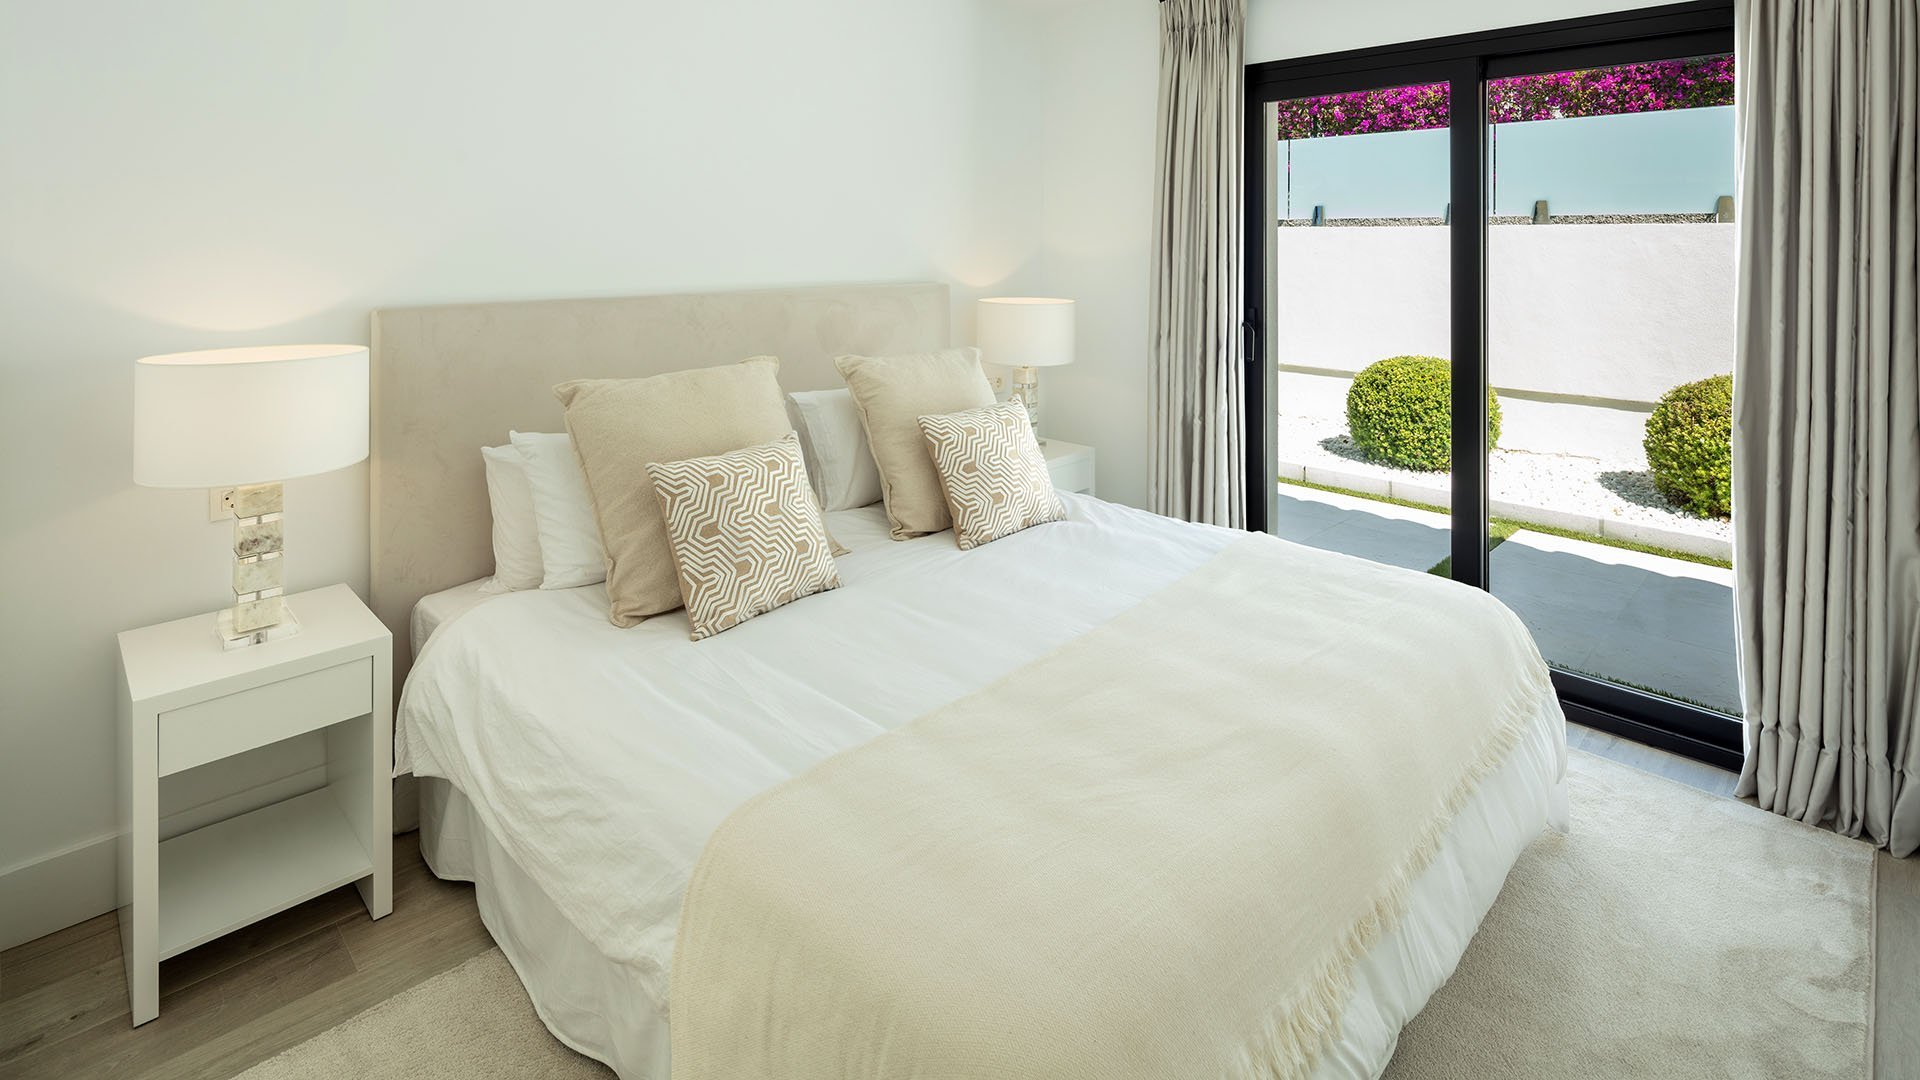 Cortijo Blanco 27: Beautiful villa at walking distance from the beach in Puerto Banús